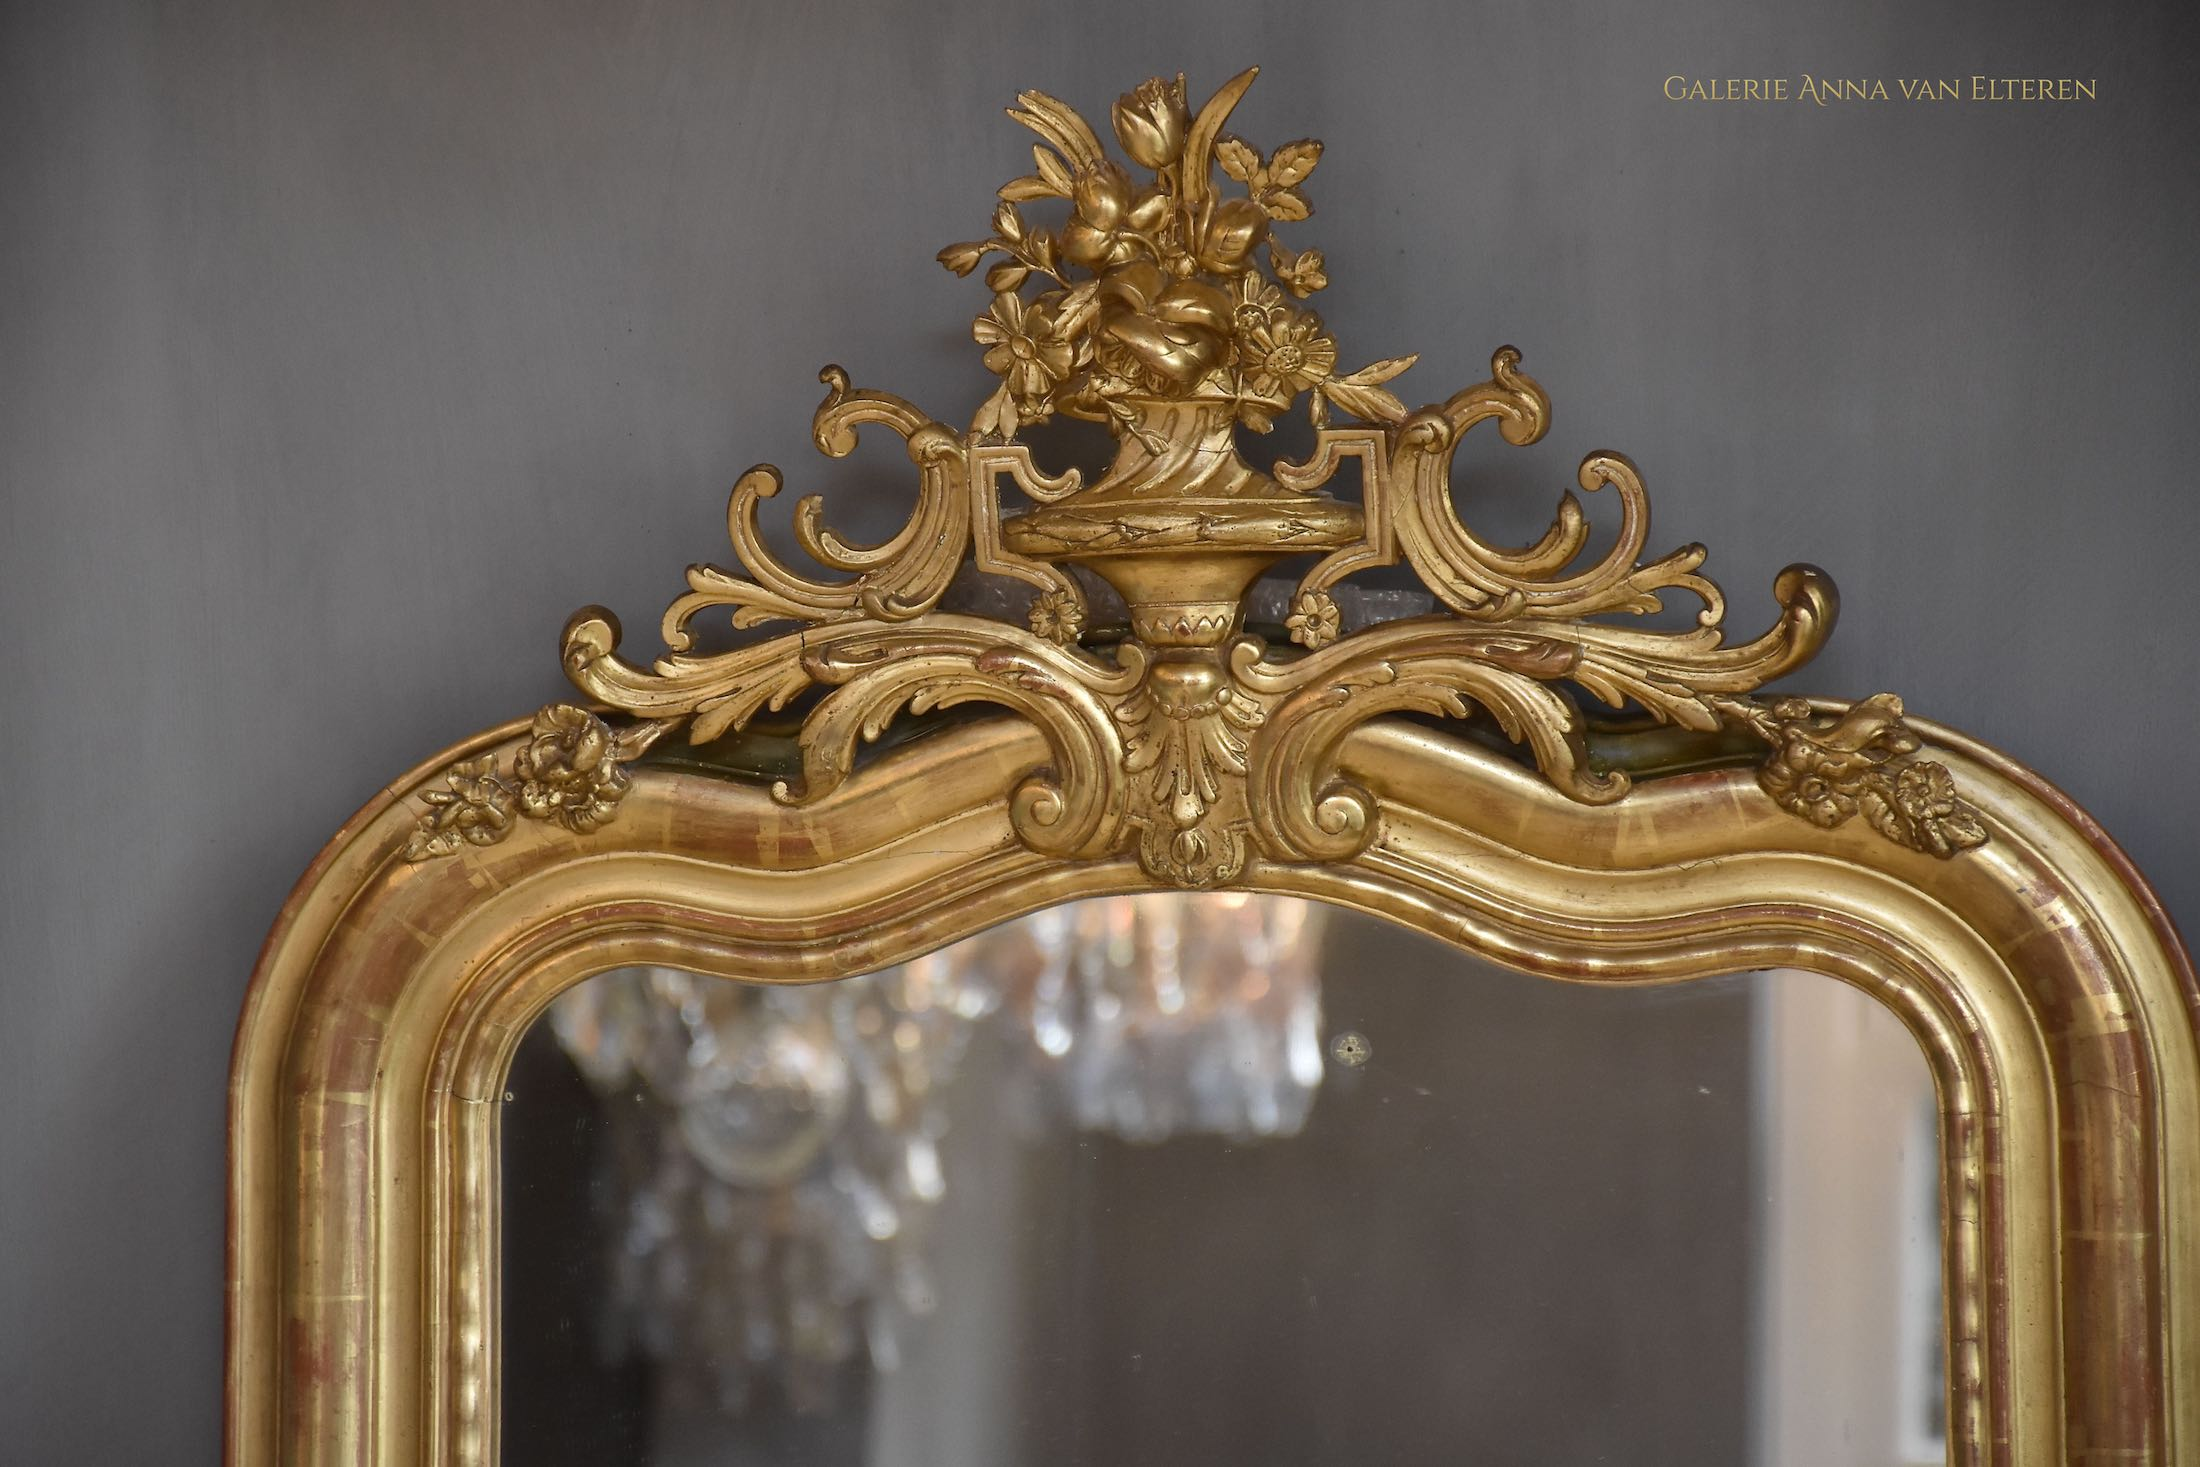 19th c. French mirror in the style of Louis XVI